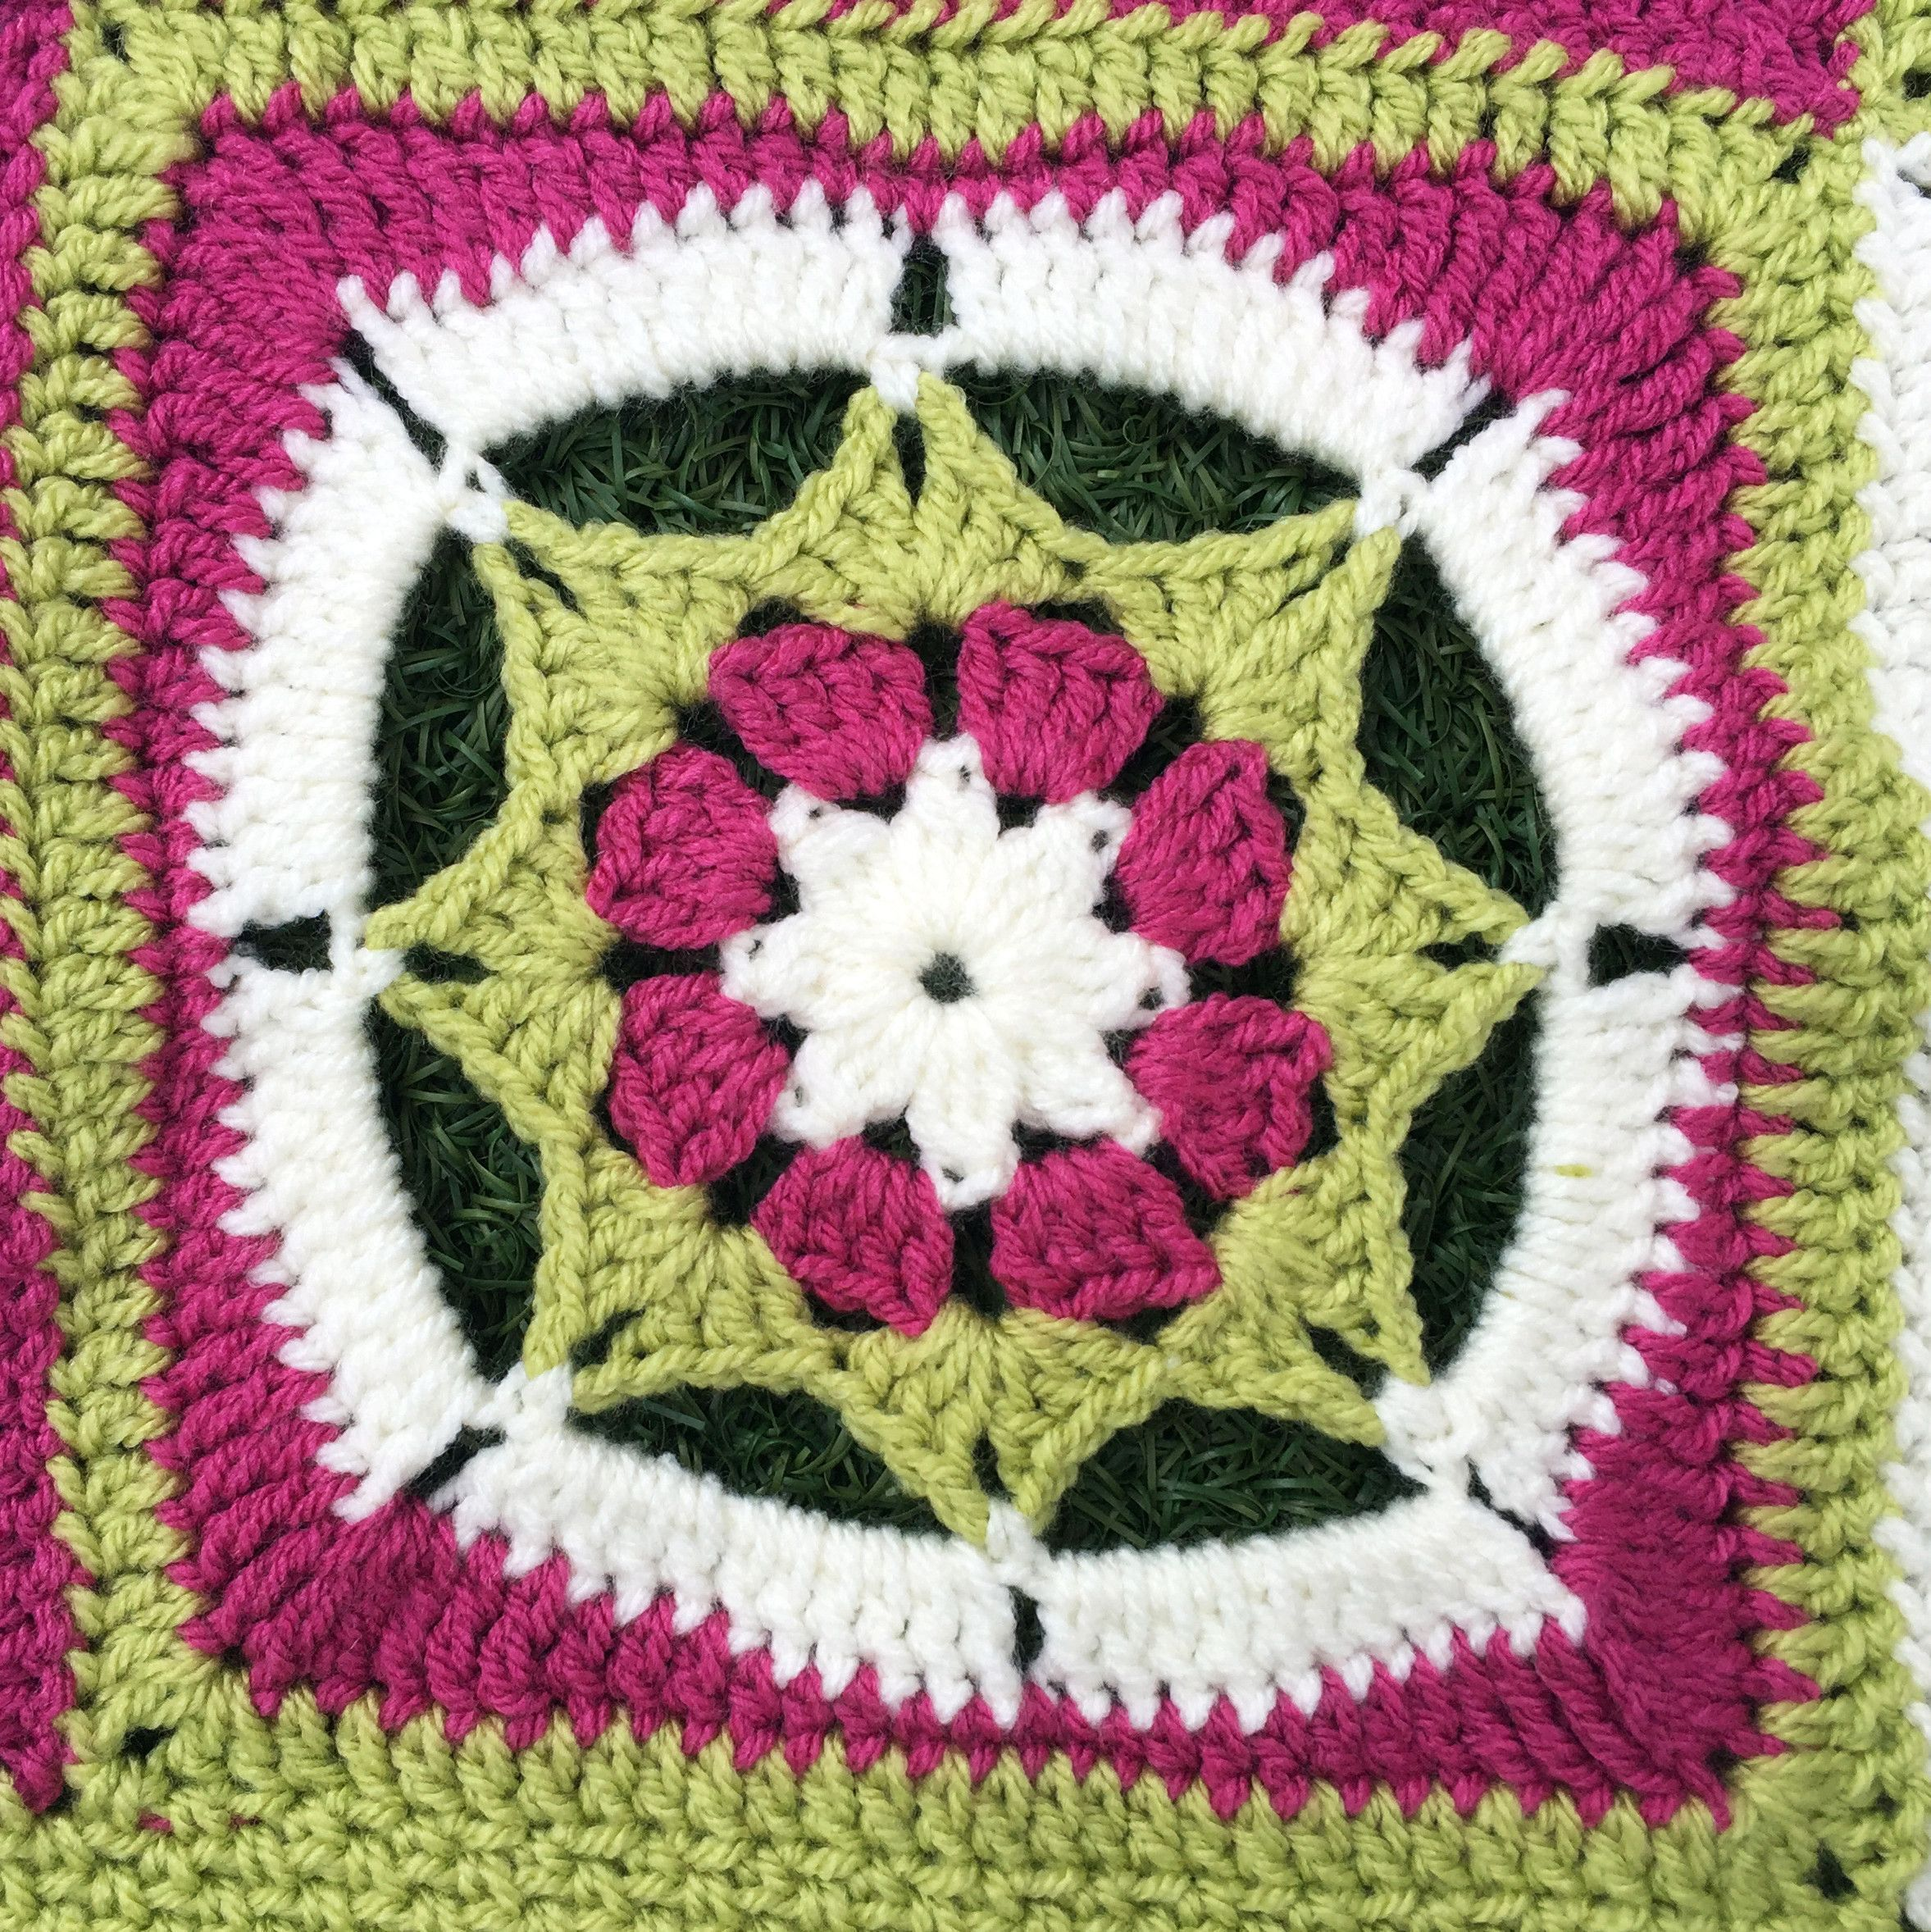 Wimbledon Blanket The Knitting Network